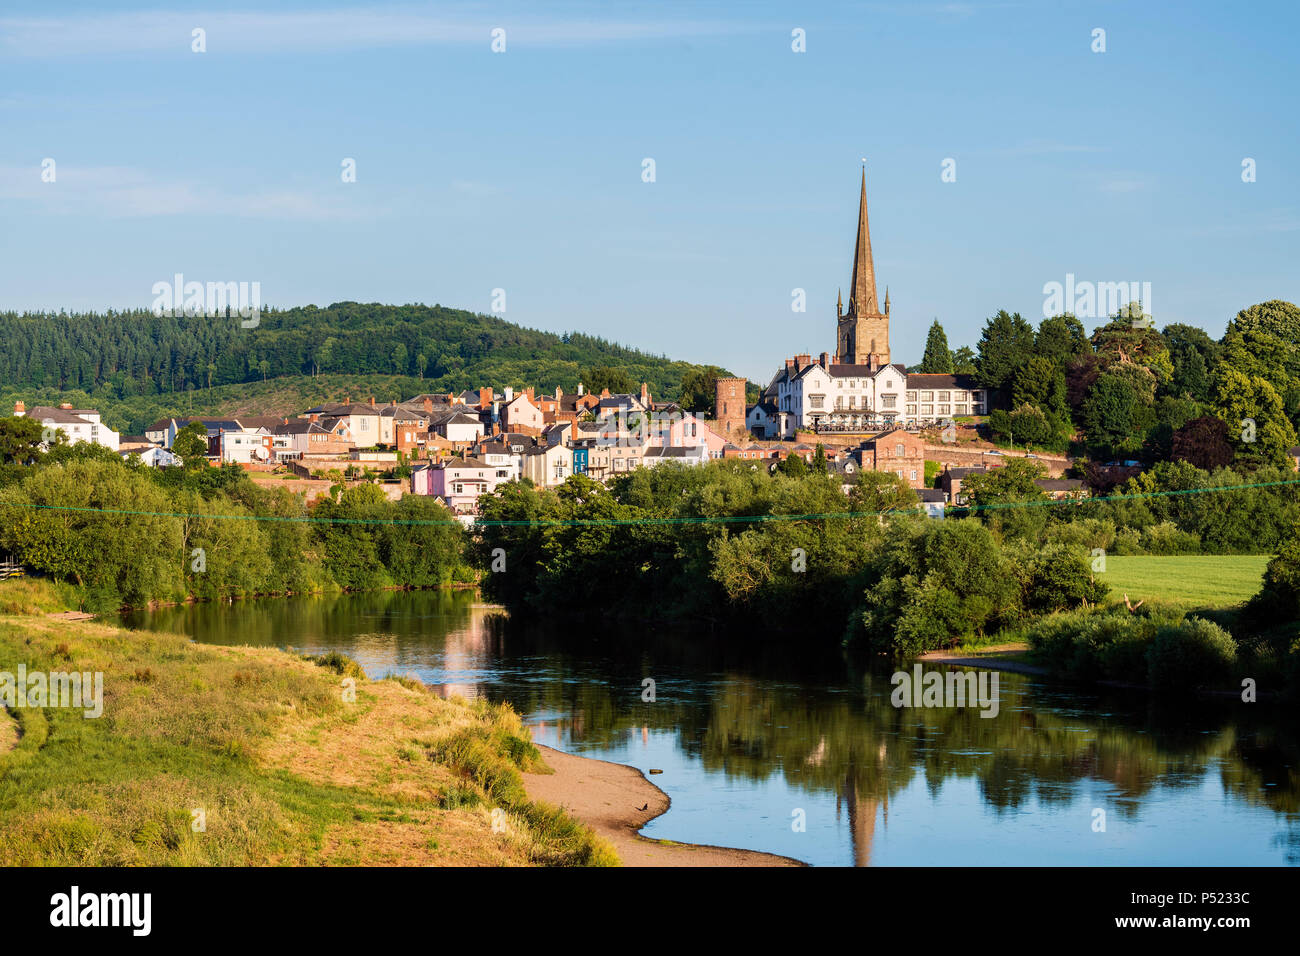 Ross on Wye, Herefordshire, UK. Photographed on a summer evening. Church spire reflected in the River Wye. - Stock Image